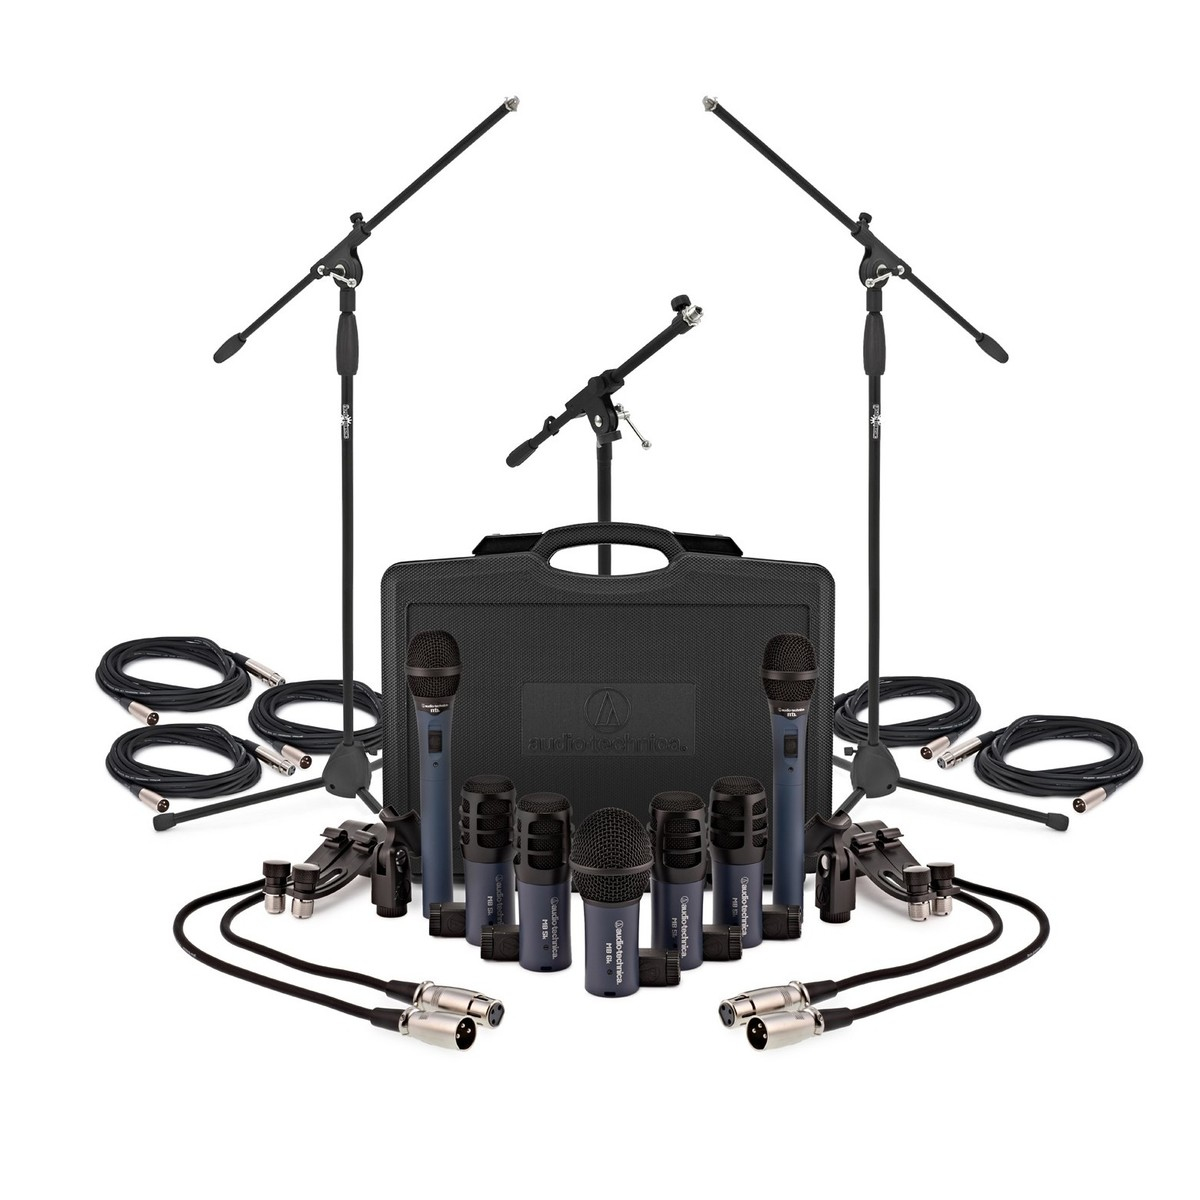 Audio Technica MBDK7 7 Piece Drum Microphone Set at Gear4music